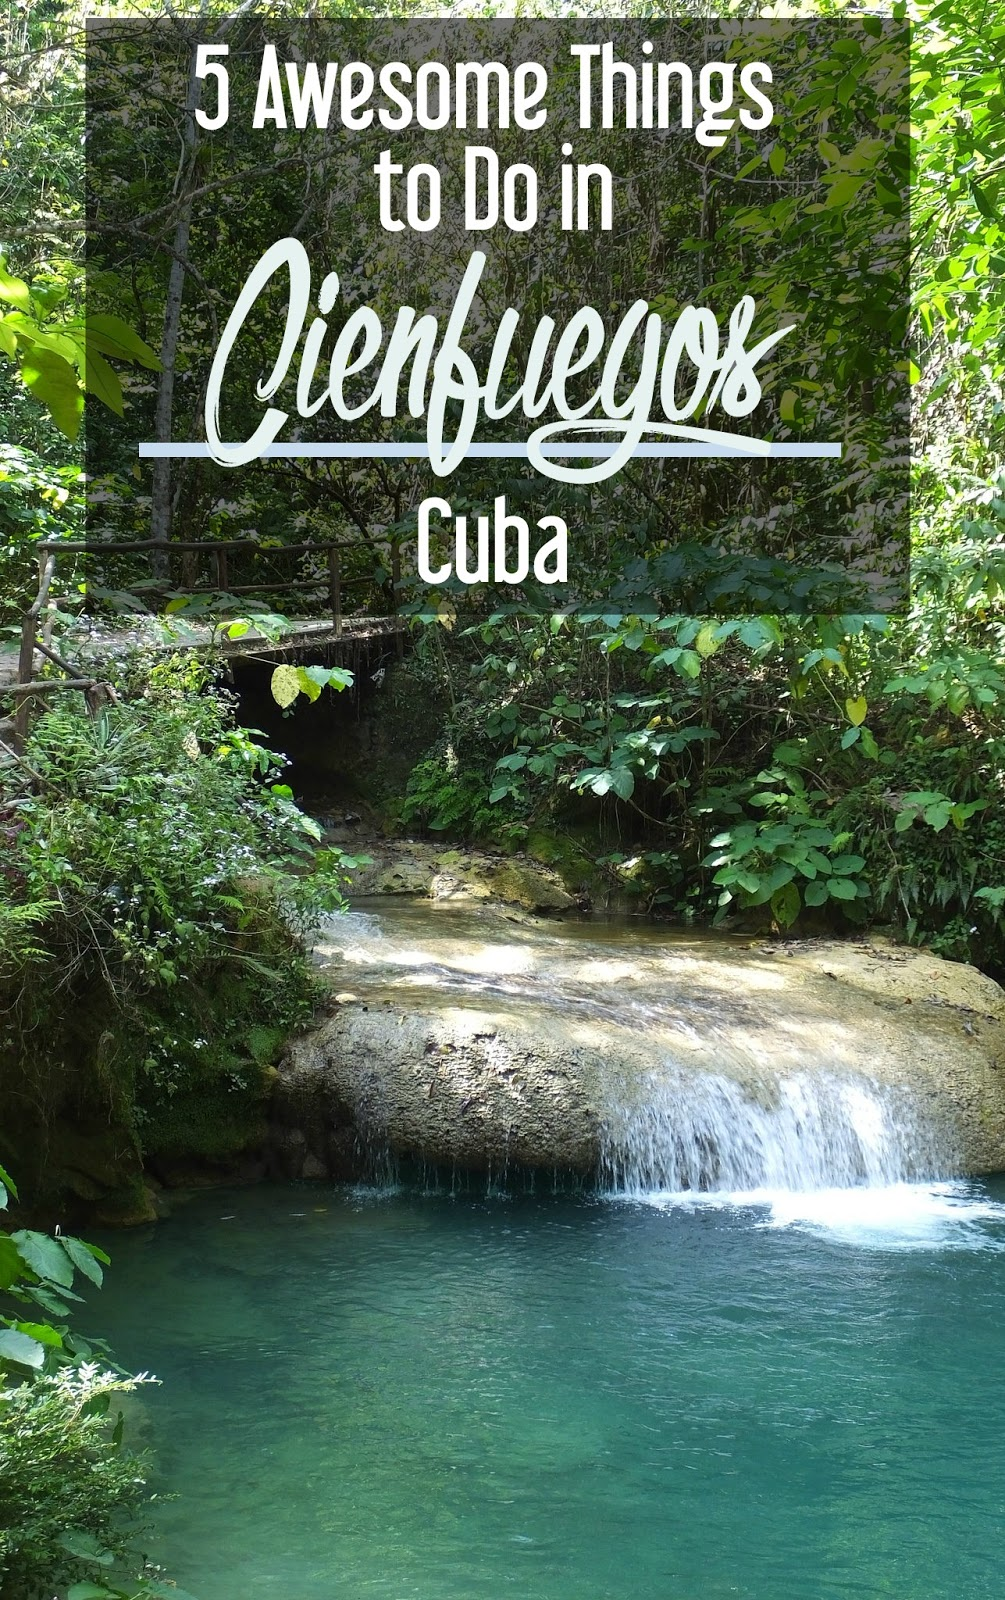 5 Awesome Things To Do In Cienfuegos, Cuba